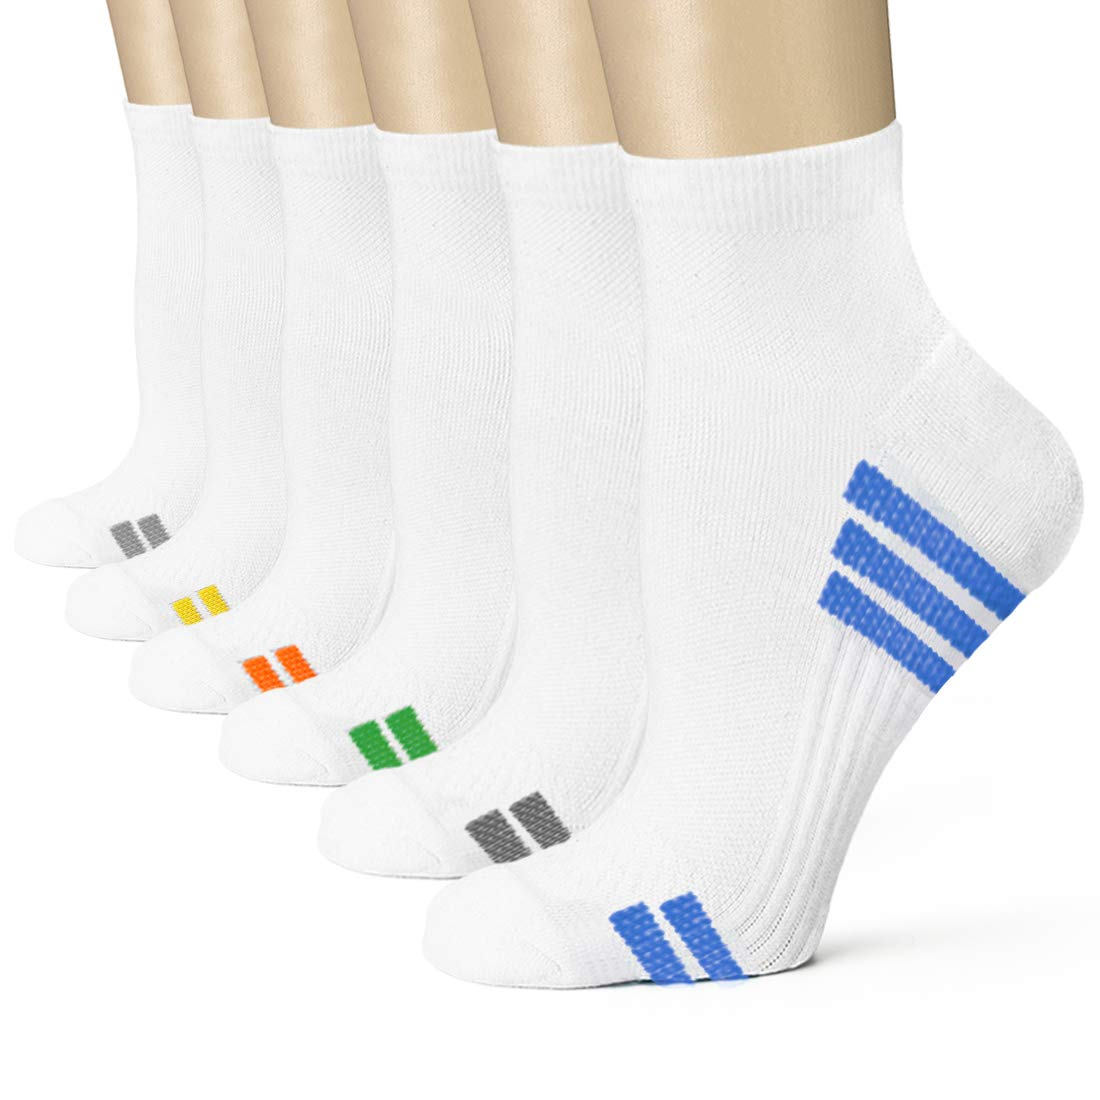 Compression Socks Women and Men, Ankle Compression Socks, Running socks (6 Pairs),Arch Support Flight Travel Nurses